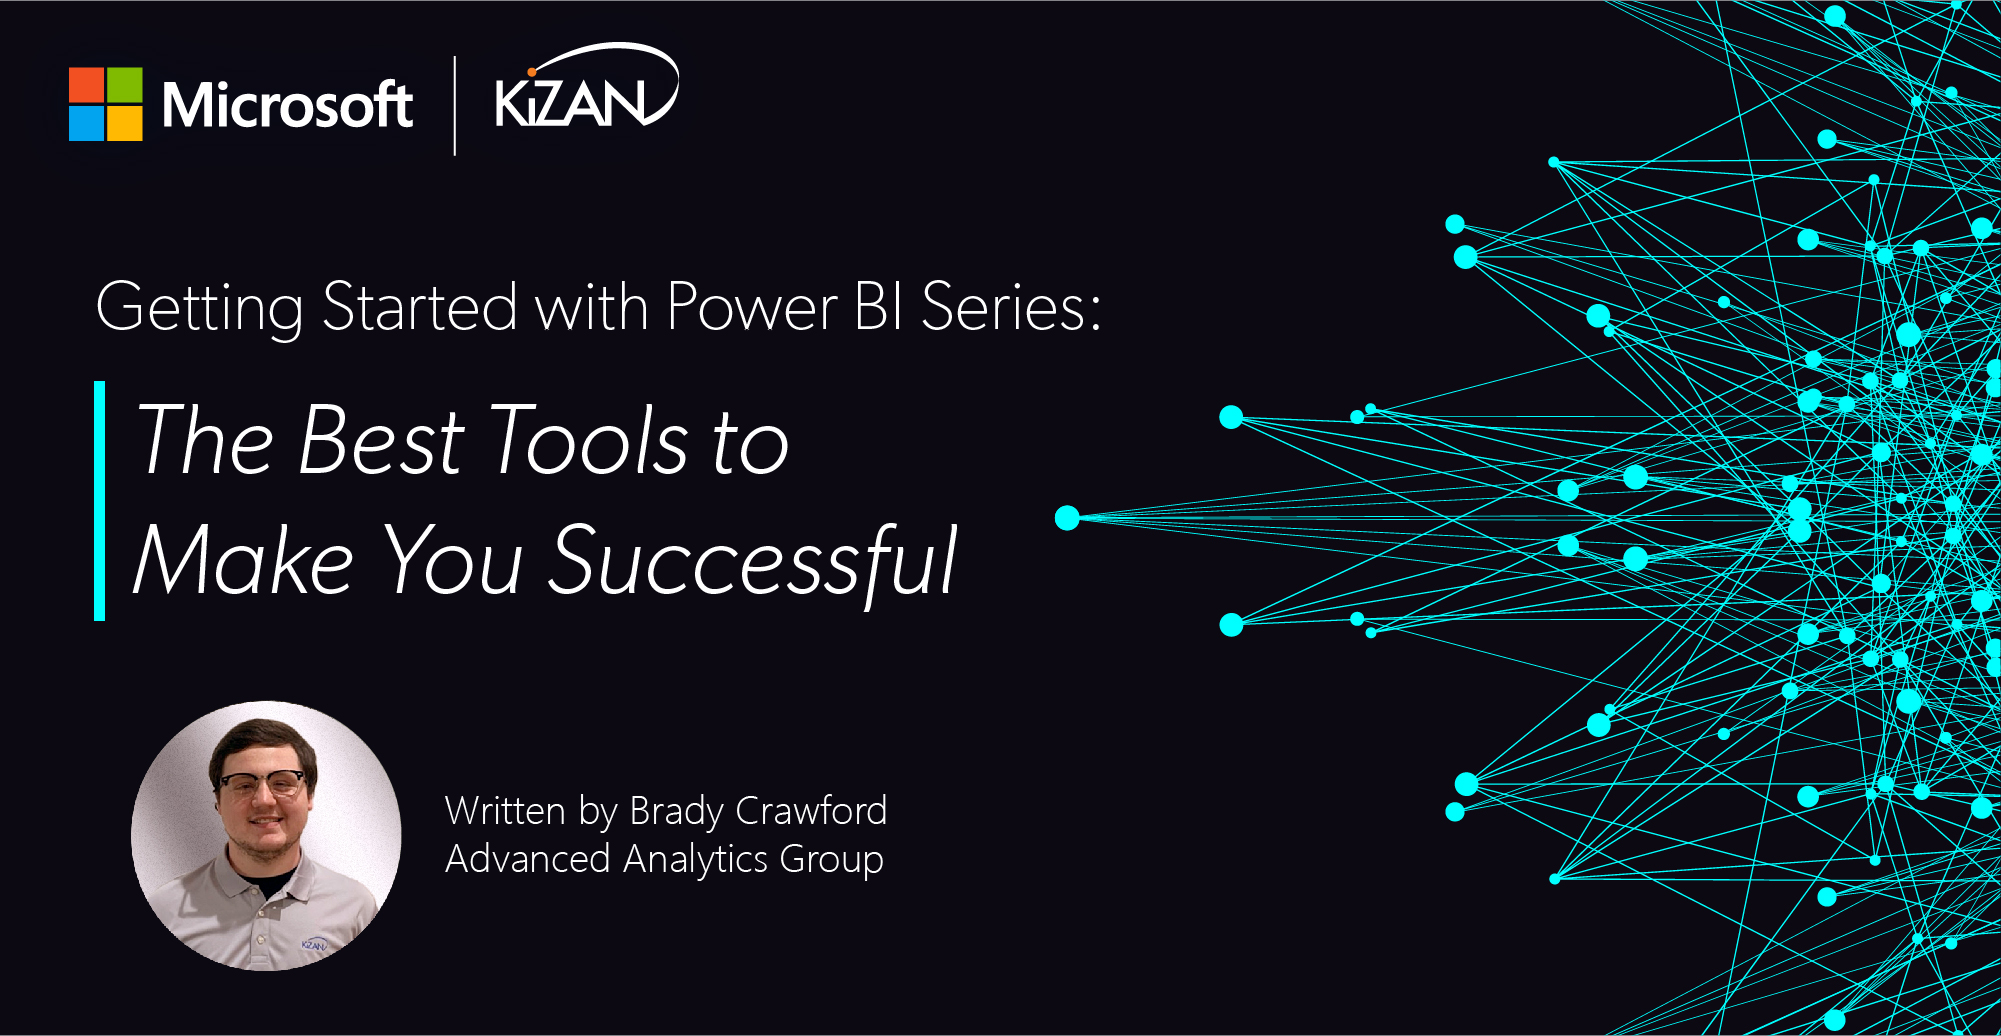 Getting Started with Power BI Series: The Best Tools to Make You Successful